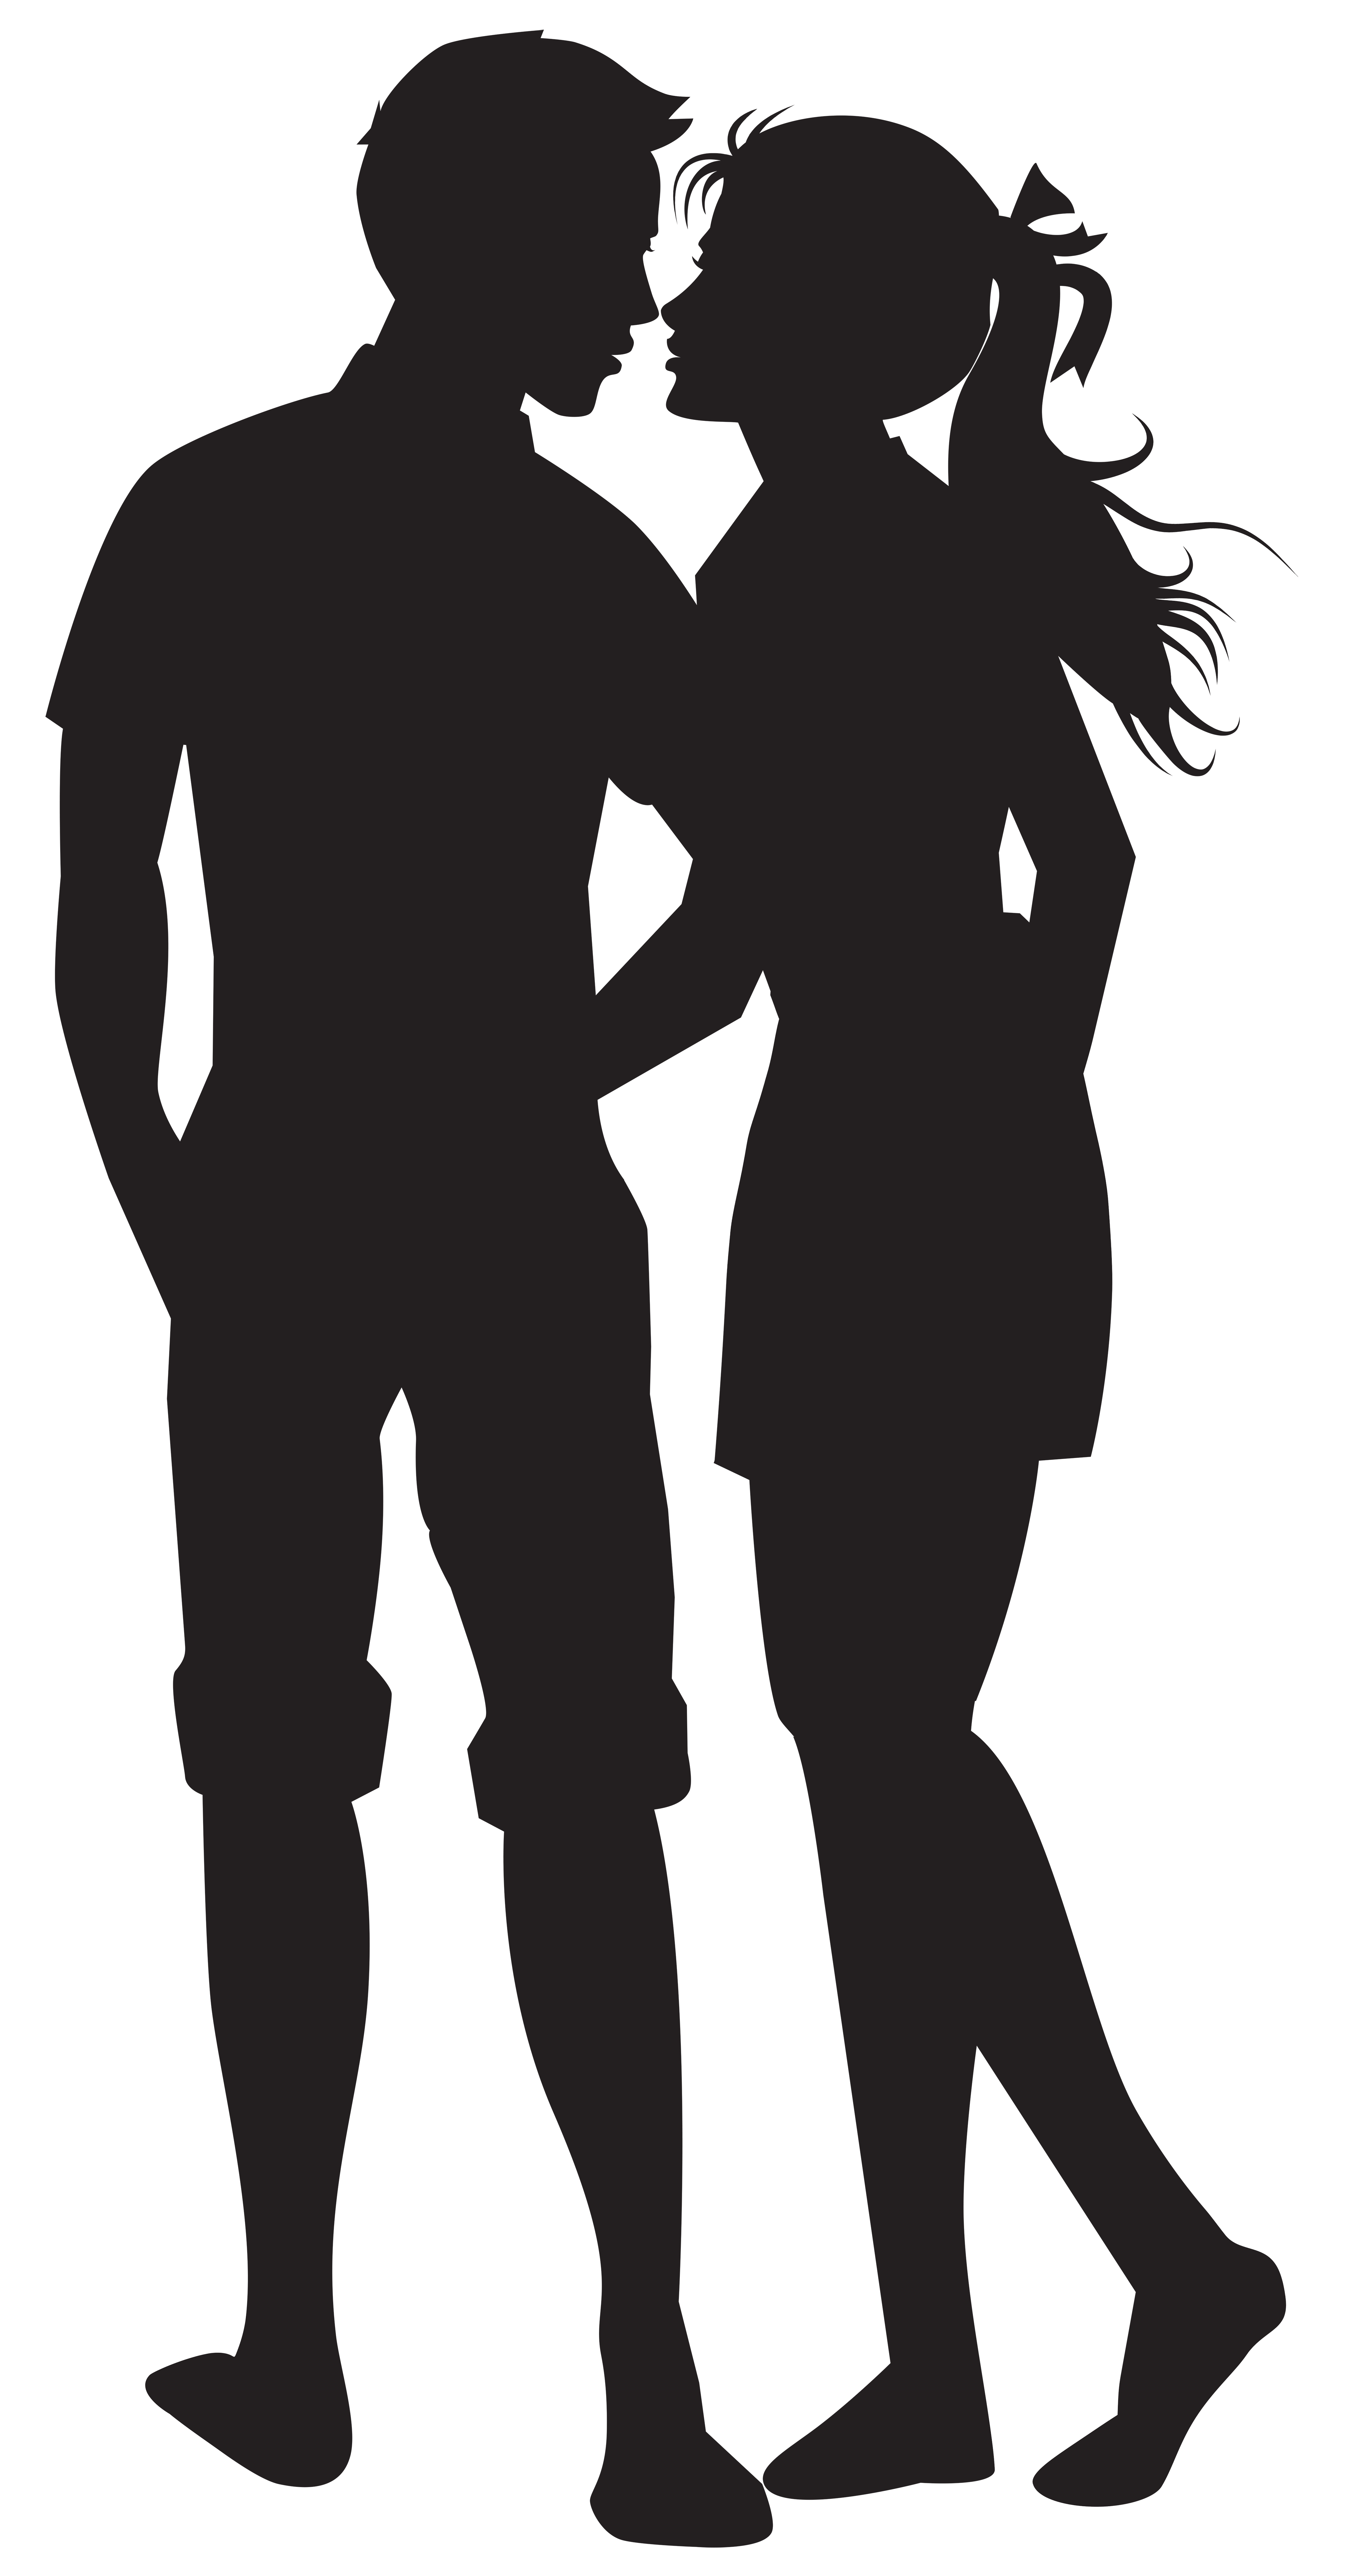 Clipart halloween couple clip art library download Couple PNG Silhouettes Clip Art Image | Gallery Yopriceville - High ... clip art library download